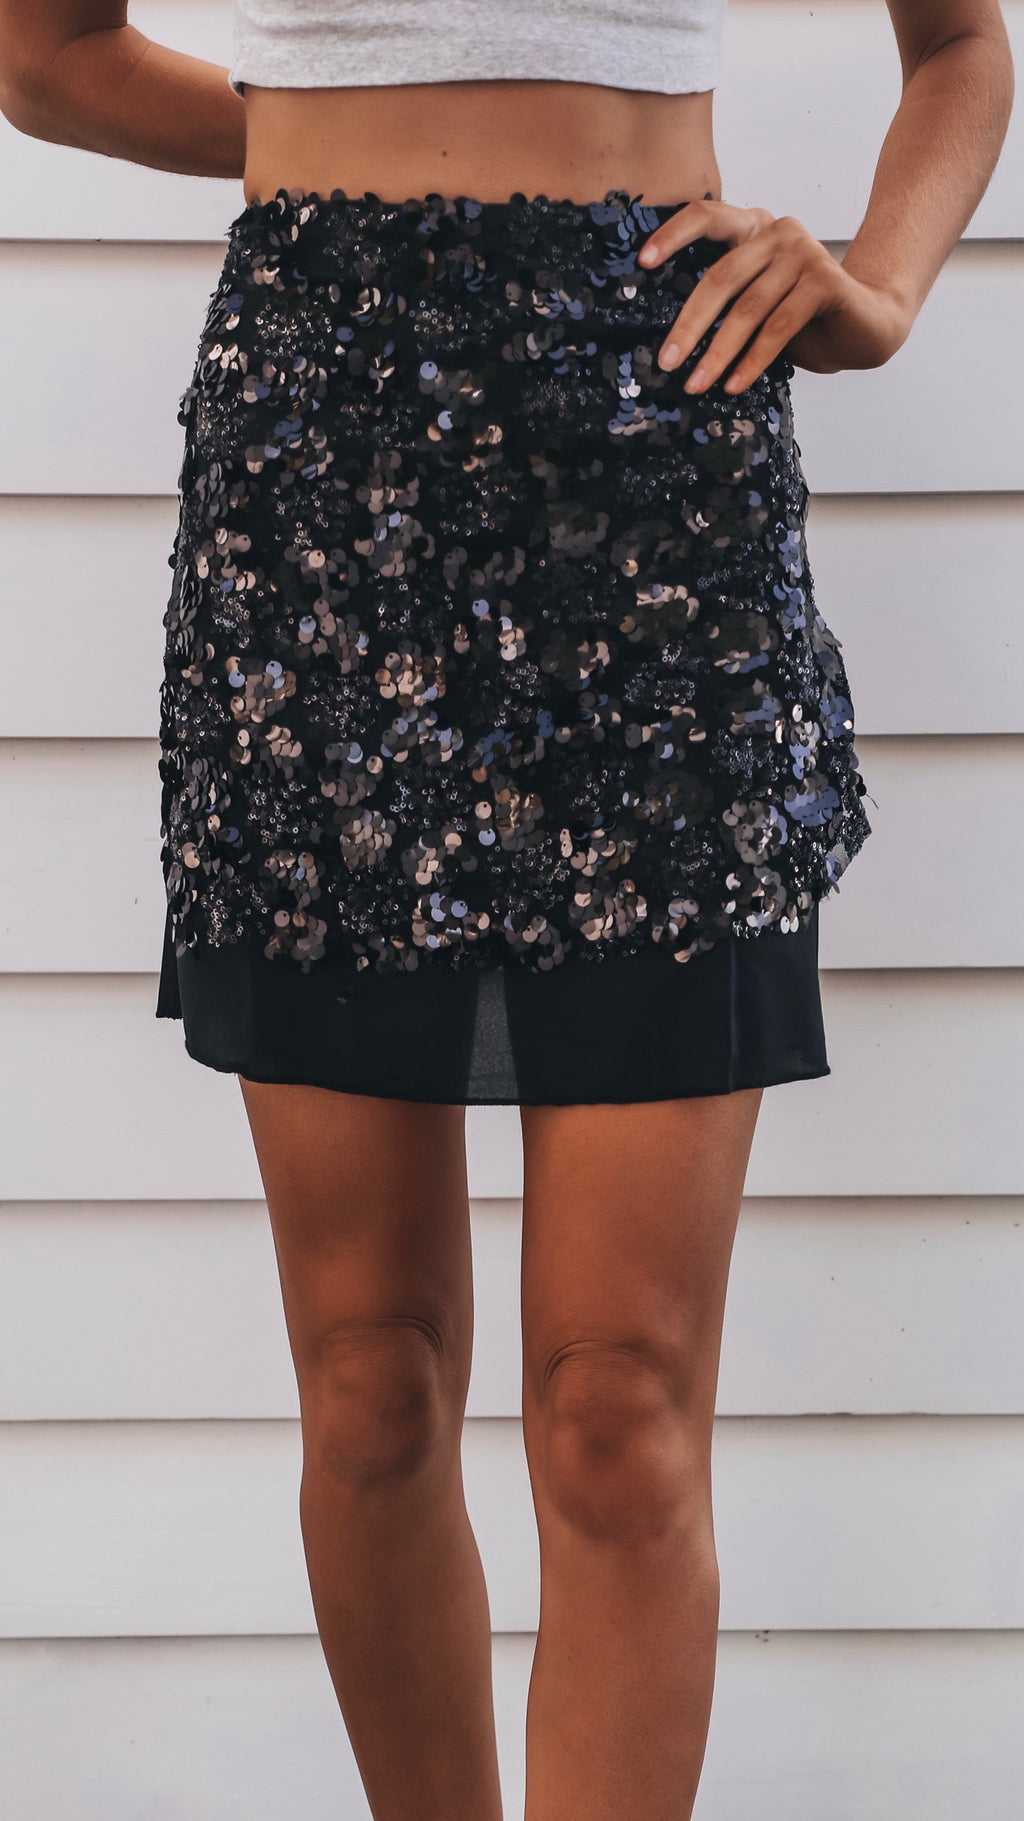 Sequin Black Mini Skirt